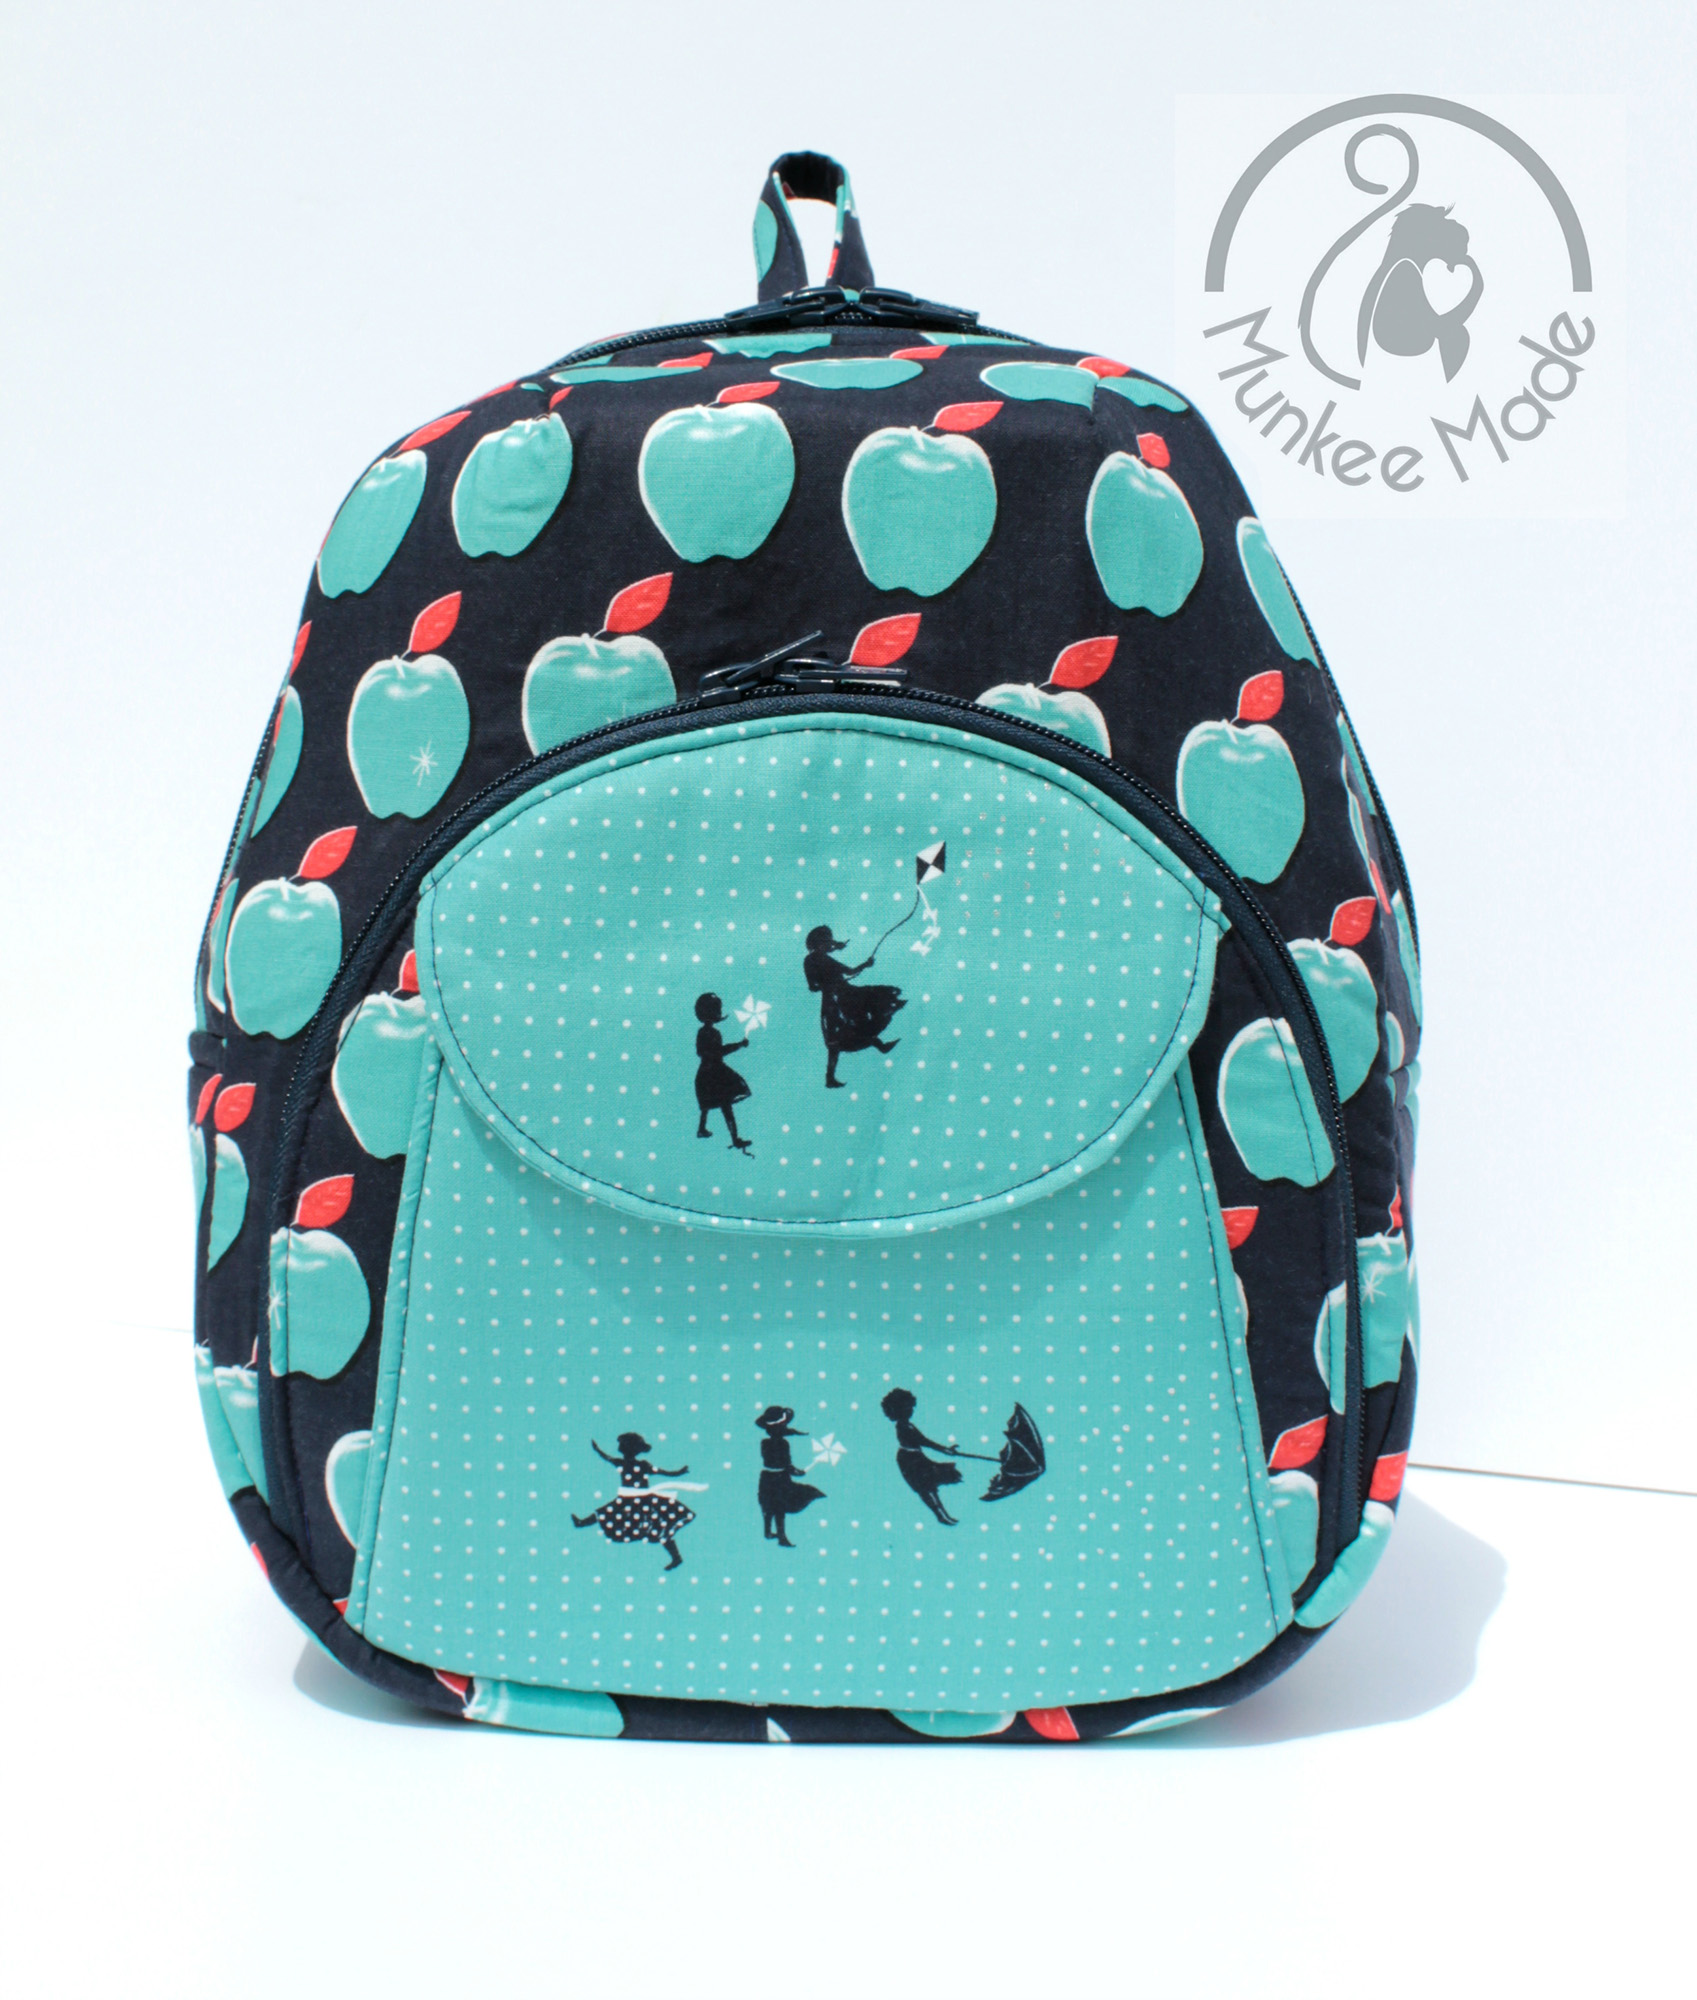 Sew Sweetness Cumberland Backpack, sewn by Sheri of Munkee Made